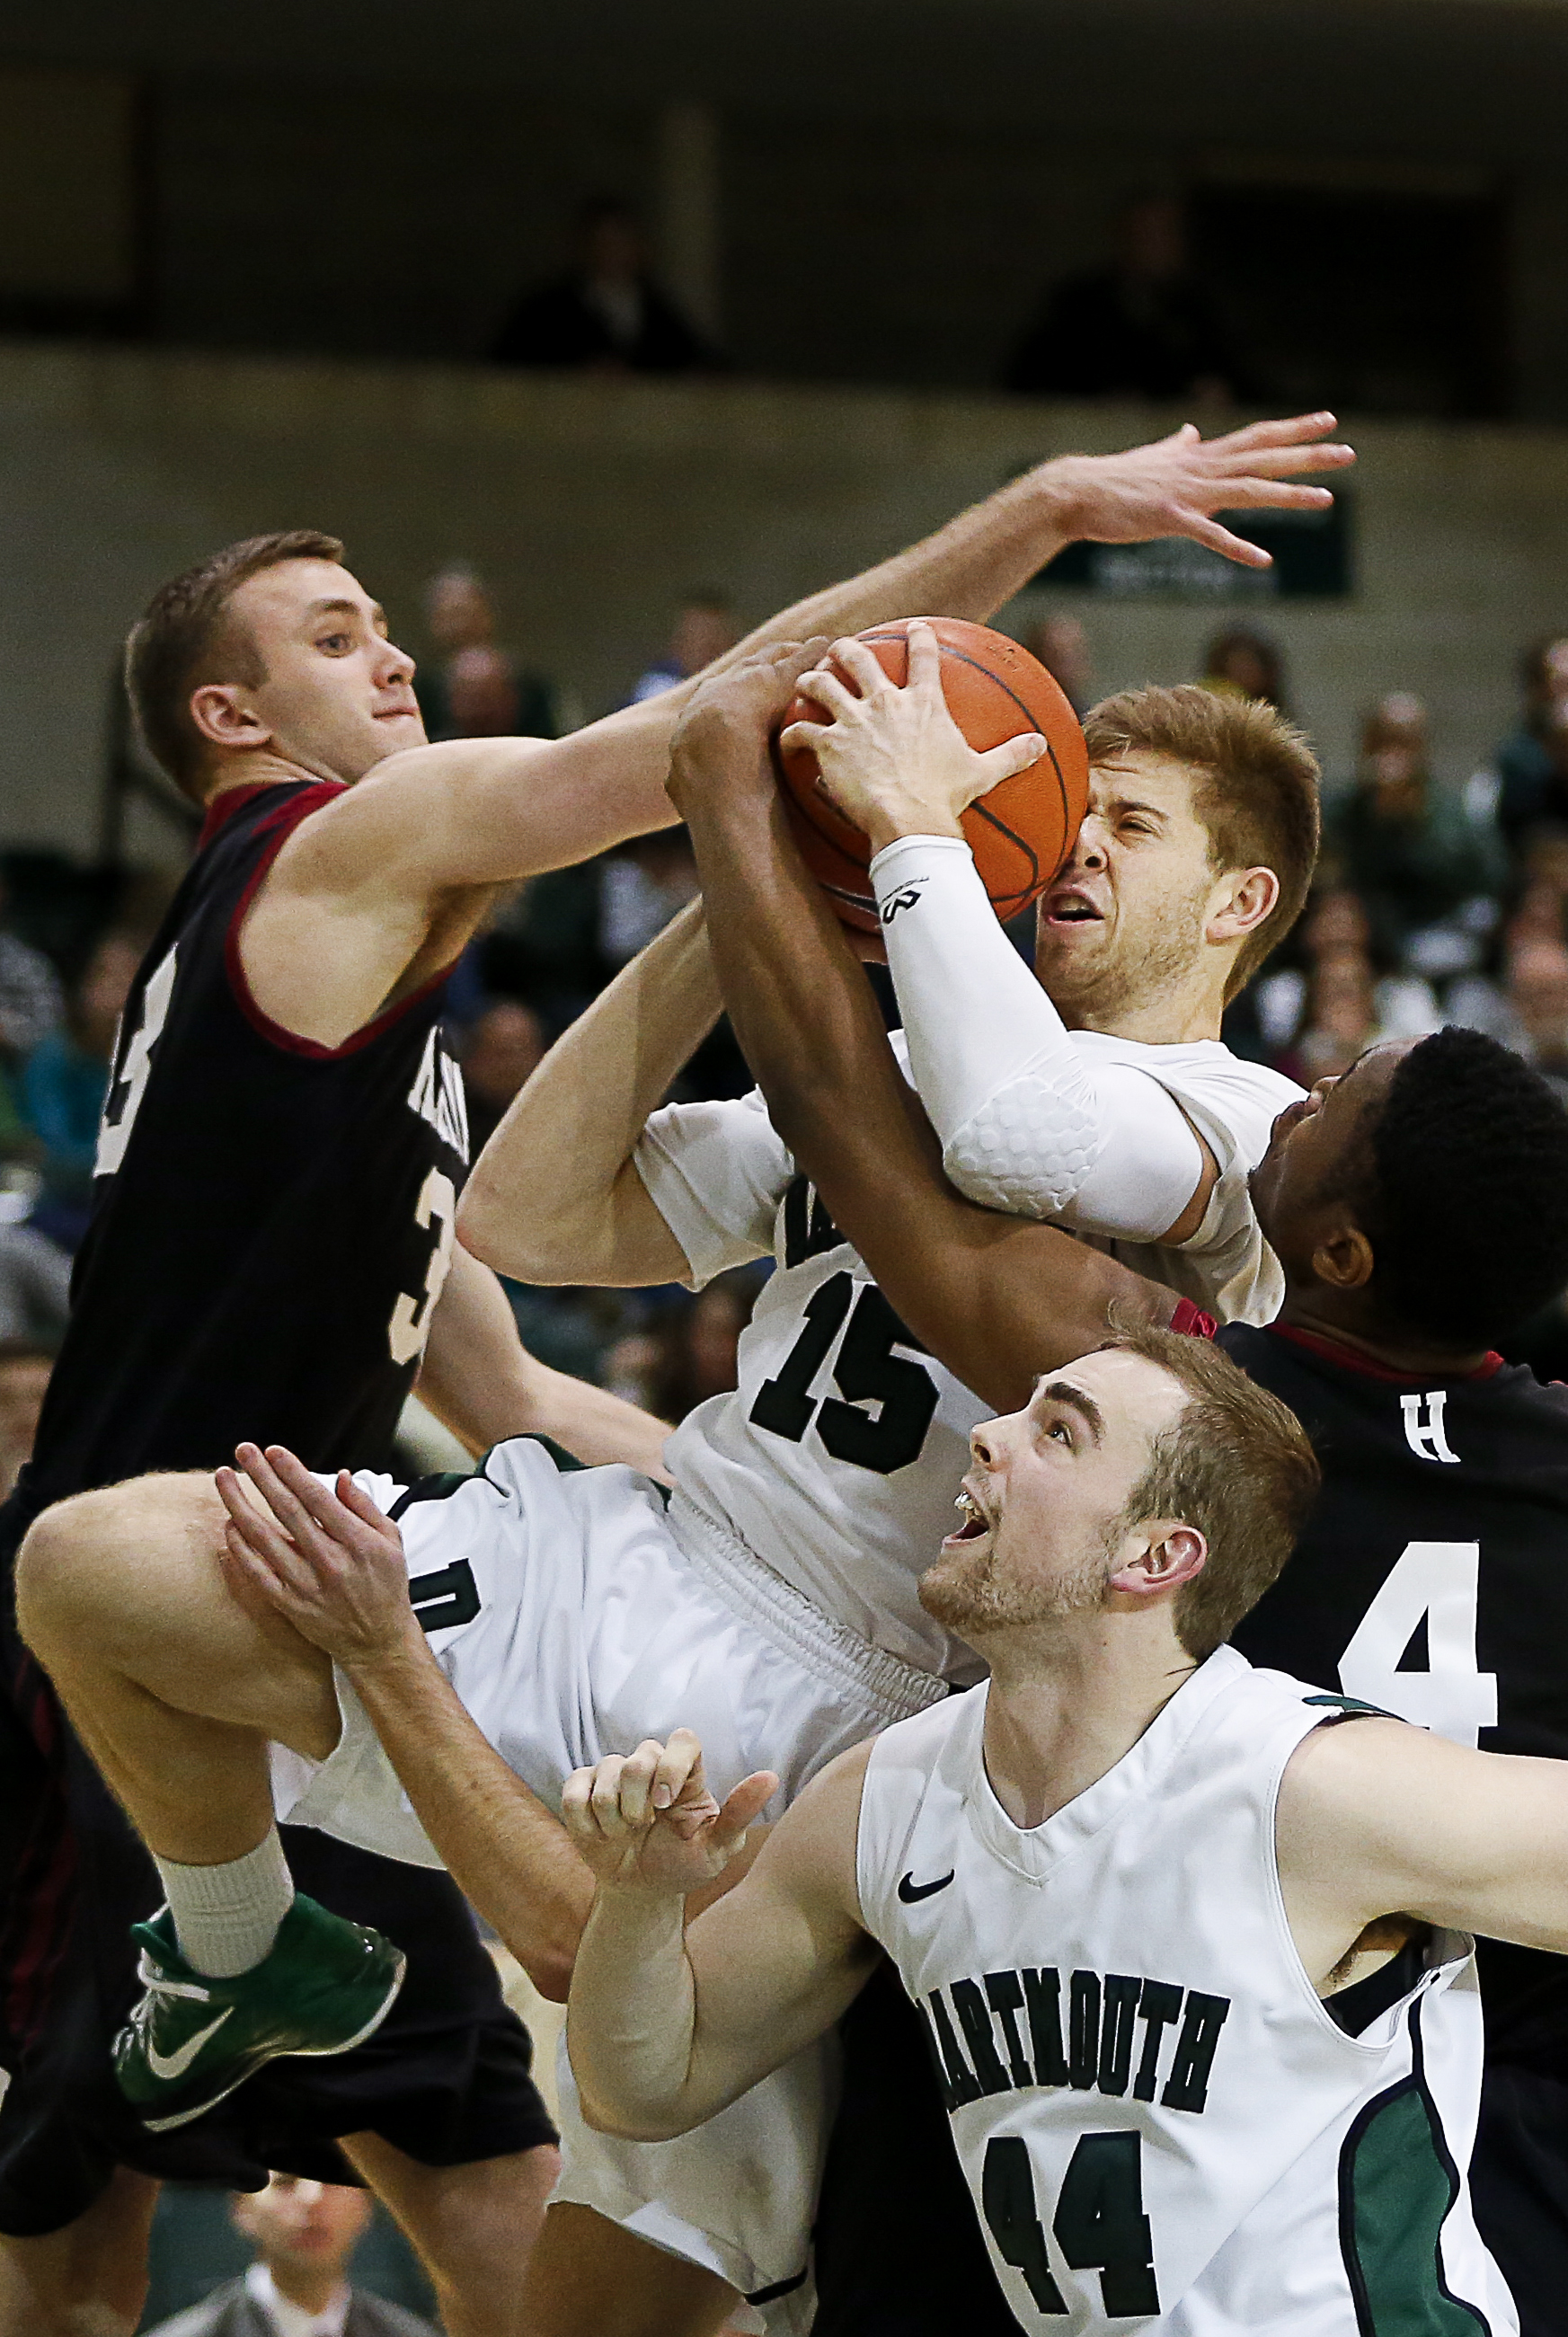 Dartmouth's Kevin Crescenzi, center, struggles to make a layup while Harvard's Evan Cummins, left, defends during the game in Hanover, N.H., on Jan. 10, 2015. Harvard won 57-46.